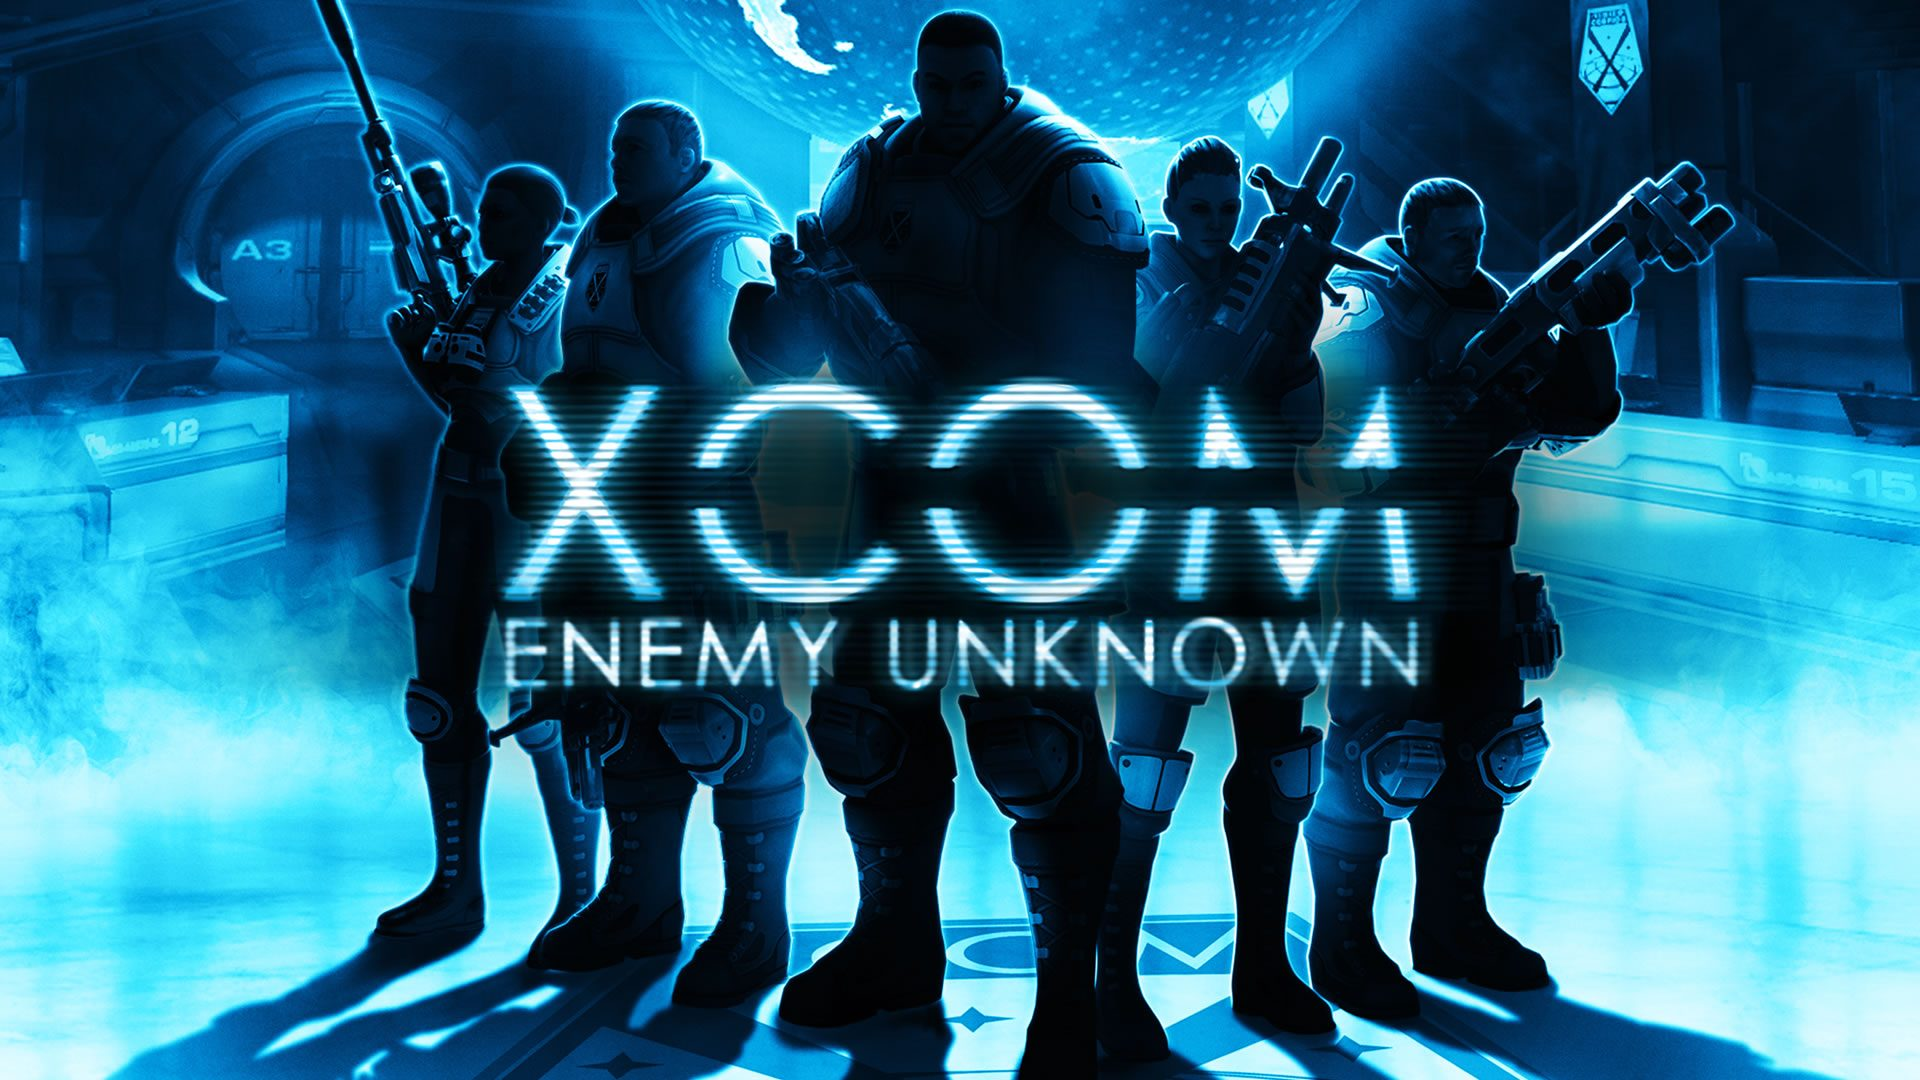 5 Xcom: Enemy Unknown Wallpapers | HD Backgrounds - Wallpaper Abyss